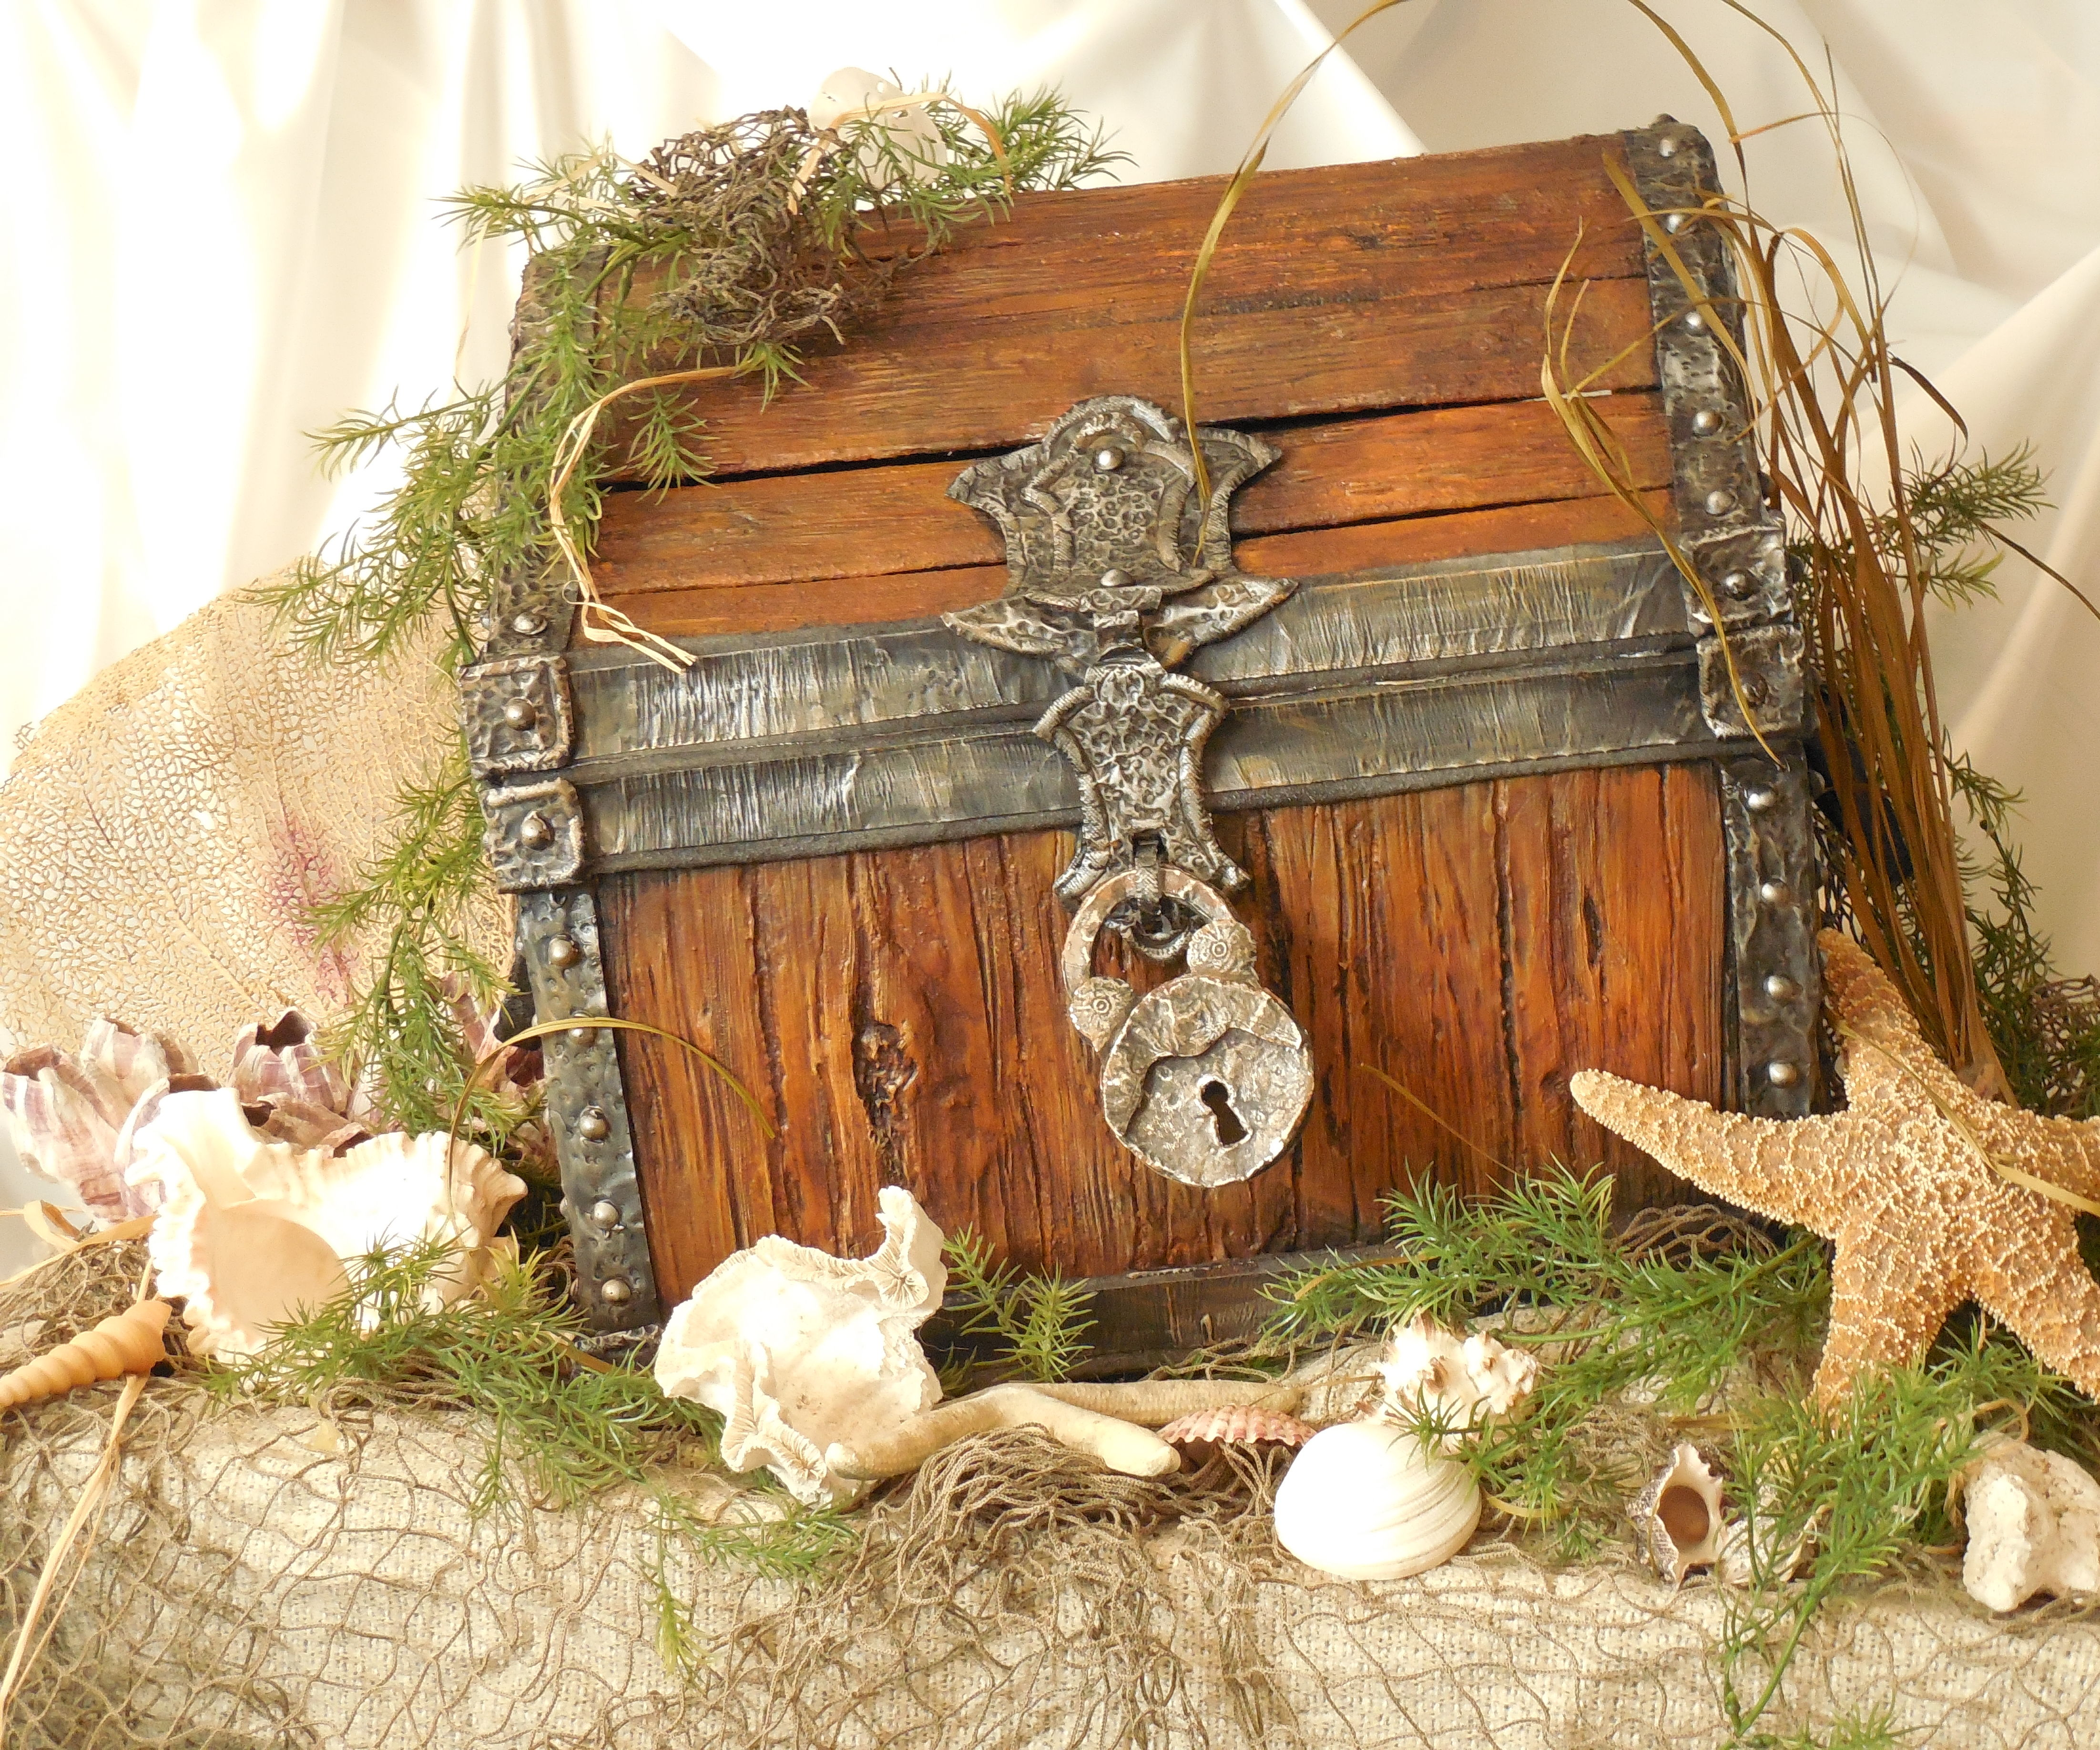 IF I COULD I WOOD ( A faux treasure chest )